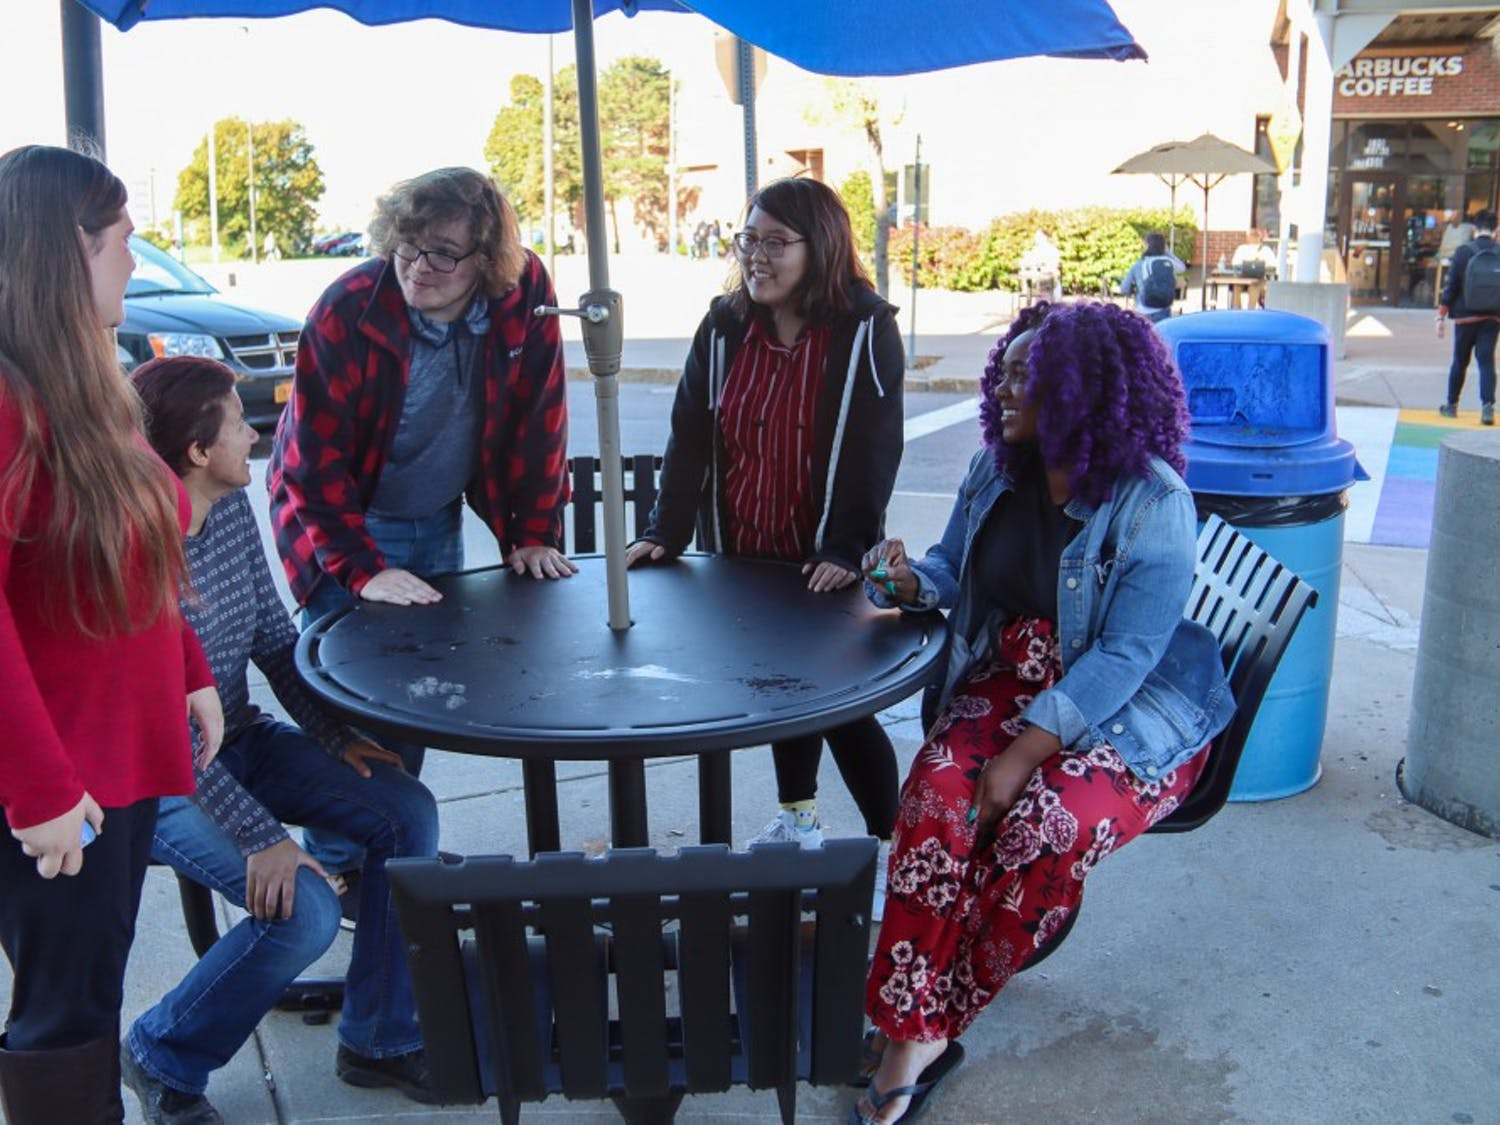 The cosplay club eboard discusses upcoming meetings in front of the Student Union.